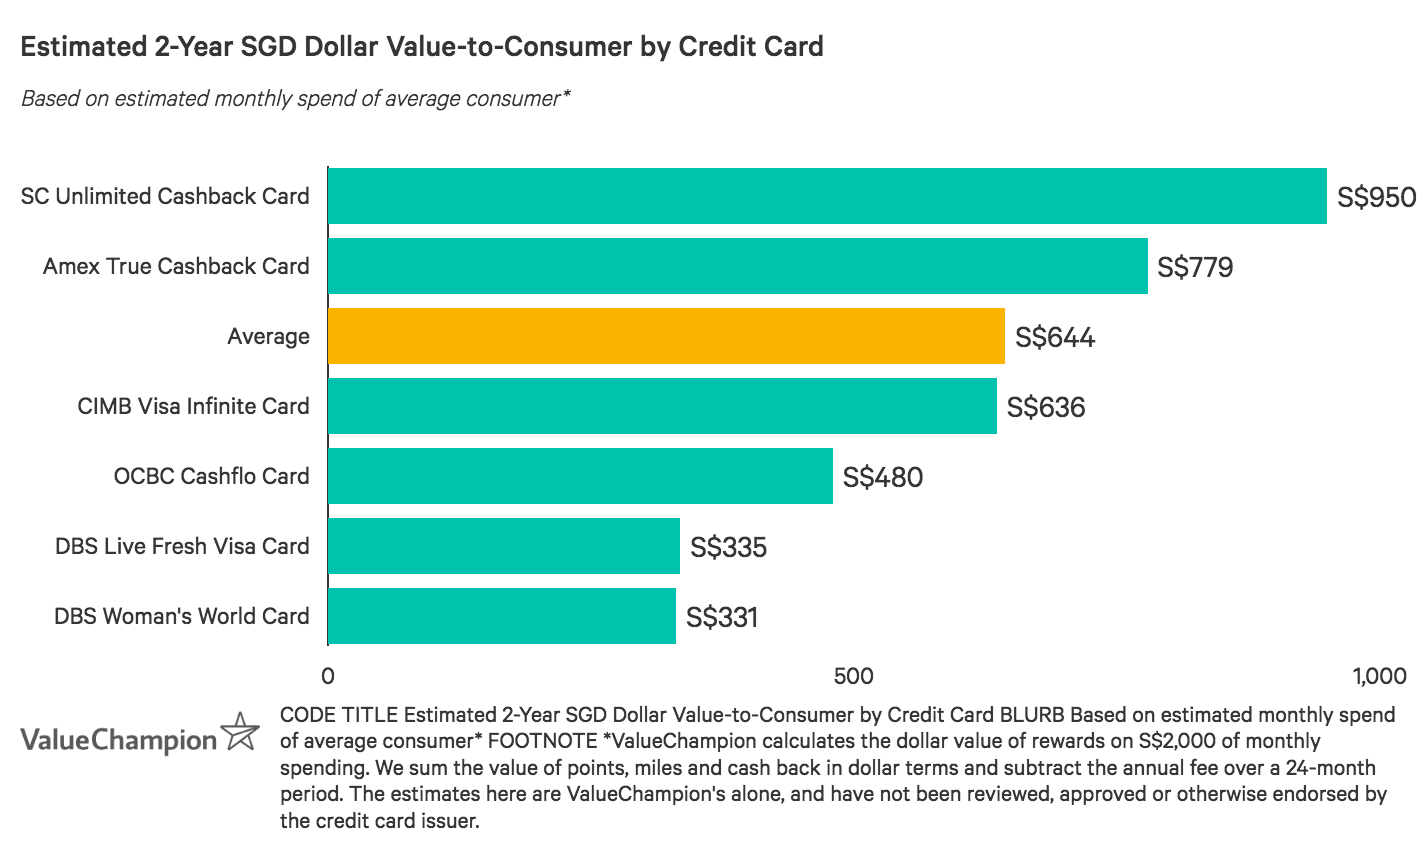 OCBC Cashflo Card performs below the market average for value-to-consumer after two years based on a monthly spend of S$2,000, likely due to its low rebate rate